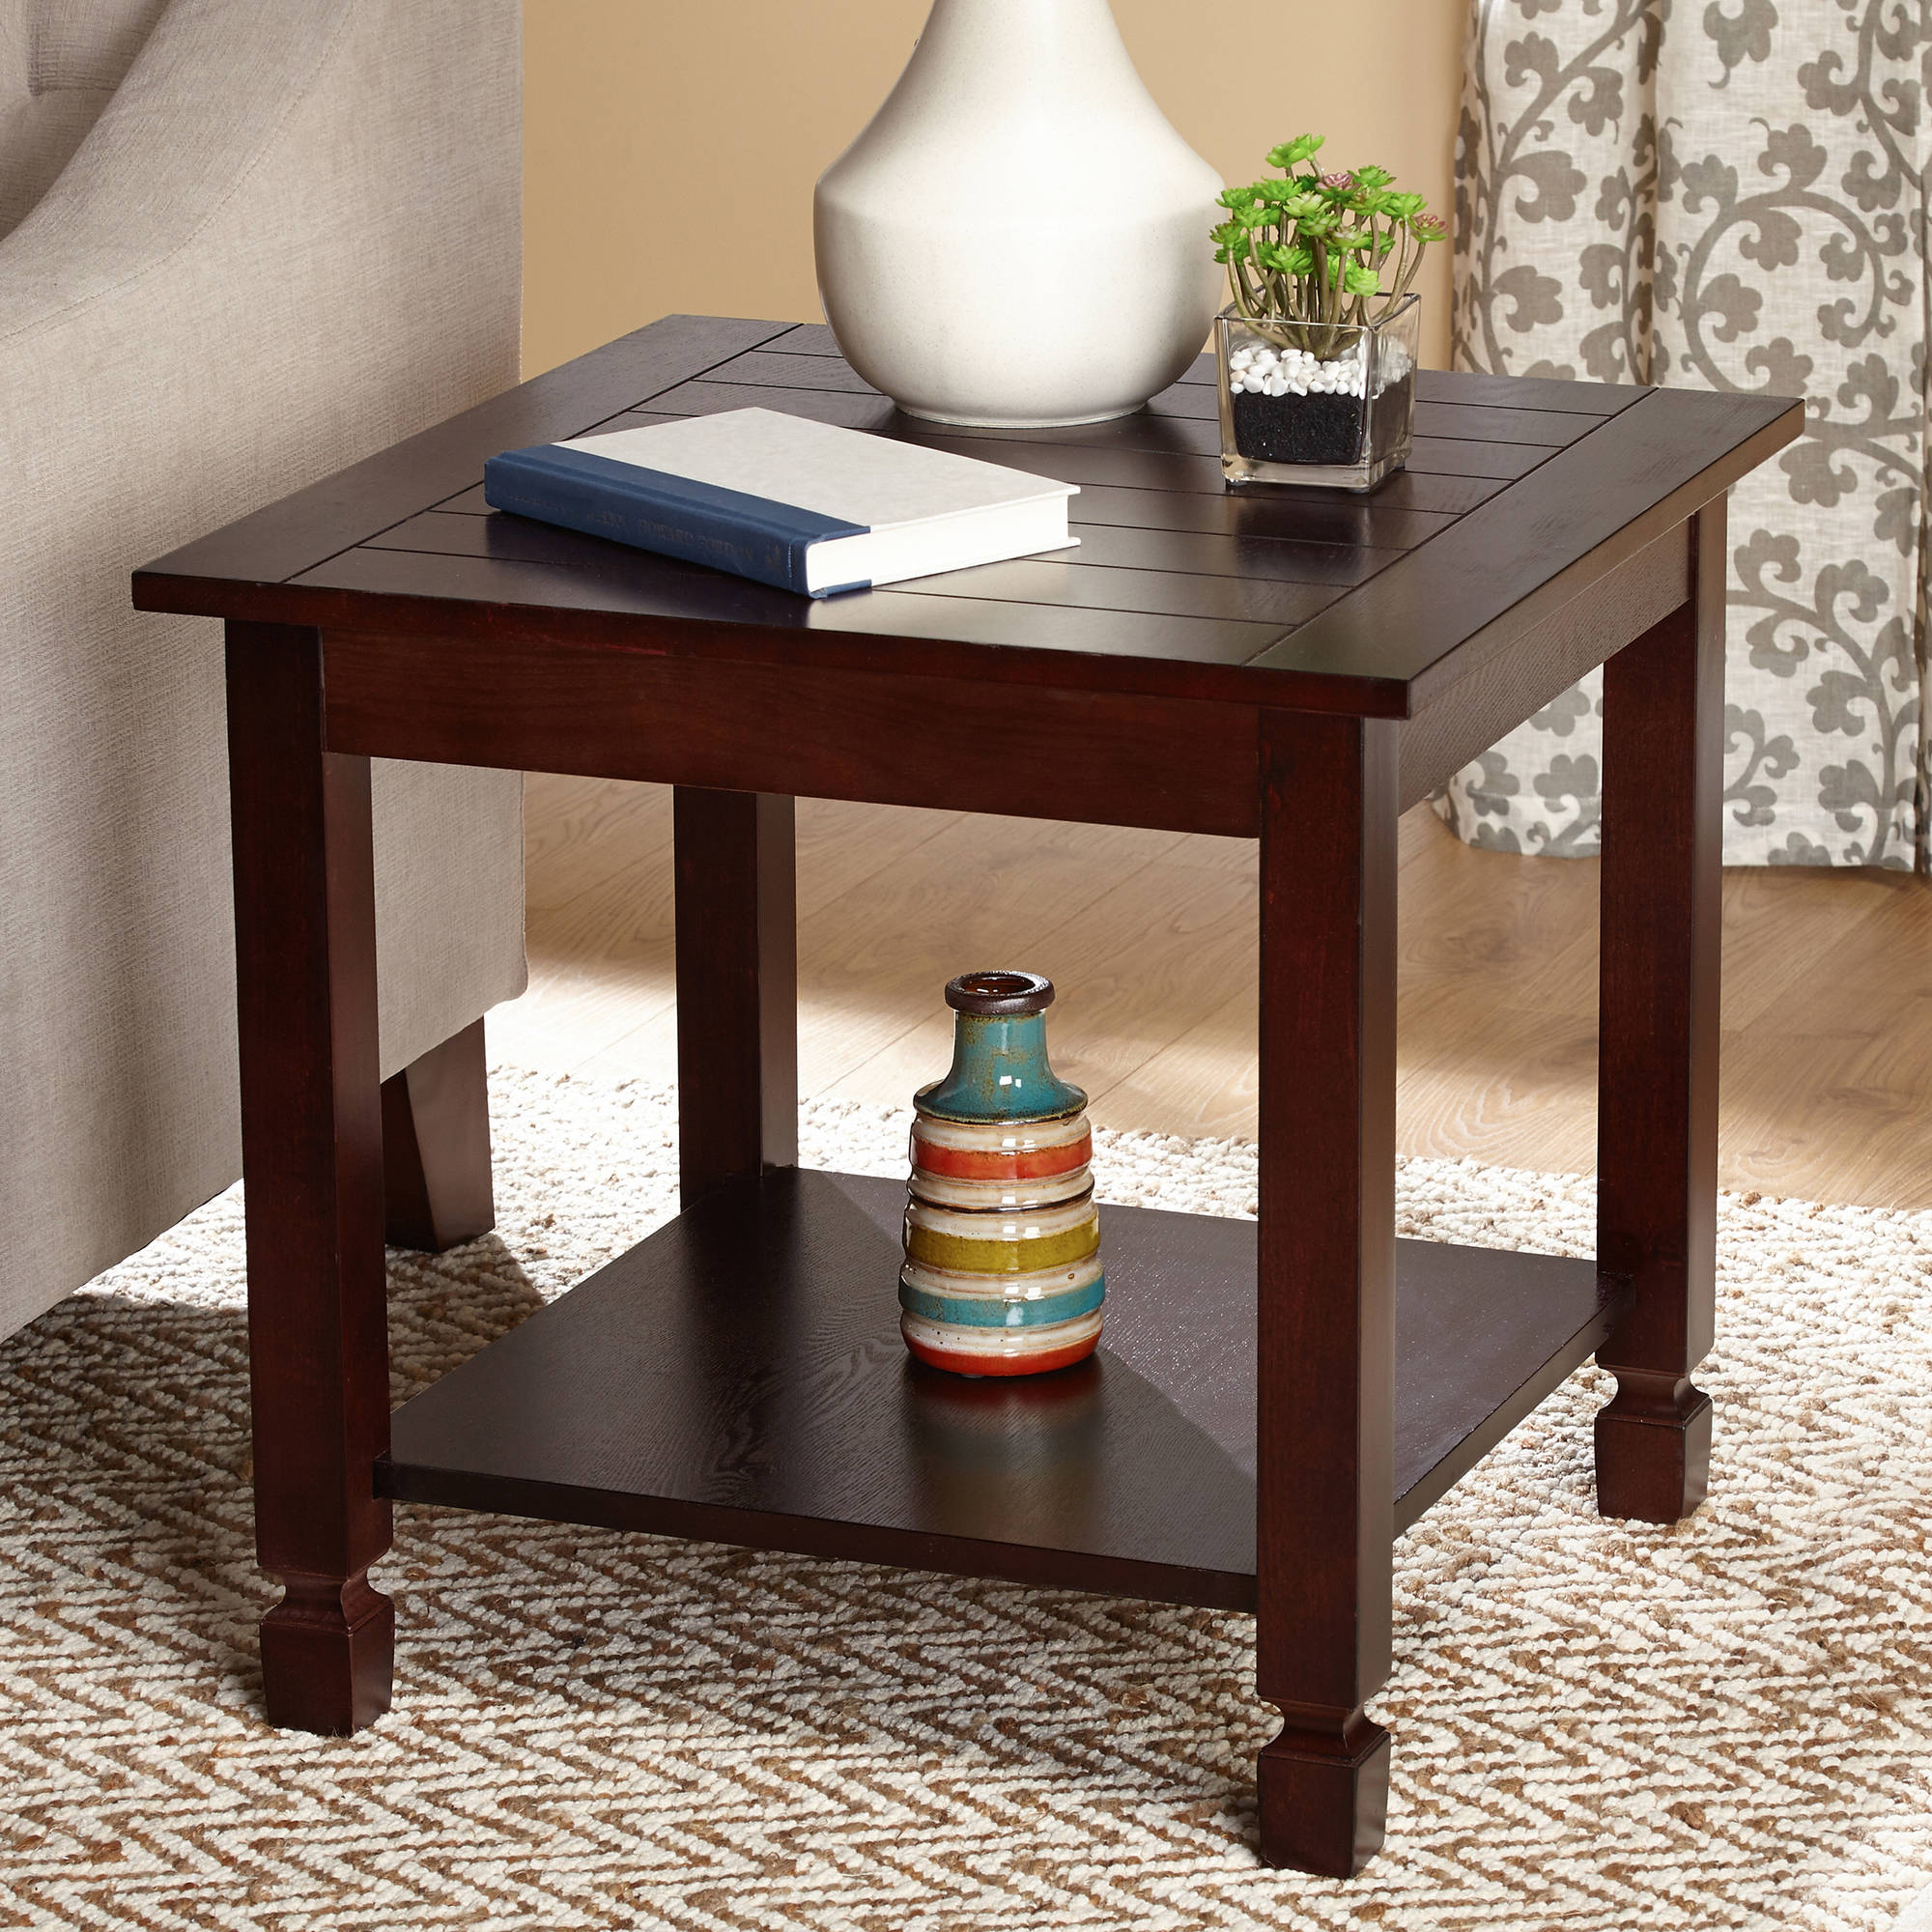 zenith end table espresso wood tables black oval coffee set marble and silver what color goes with dark brown furniture kmart off coupon white gloss glass side metal console